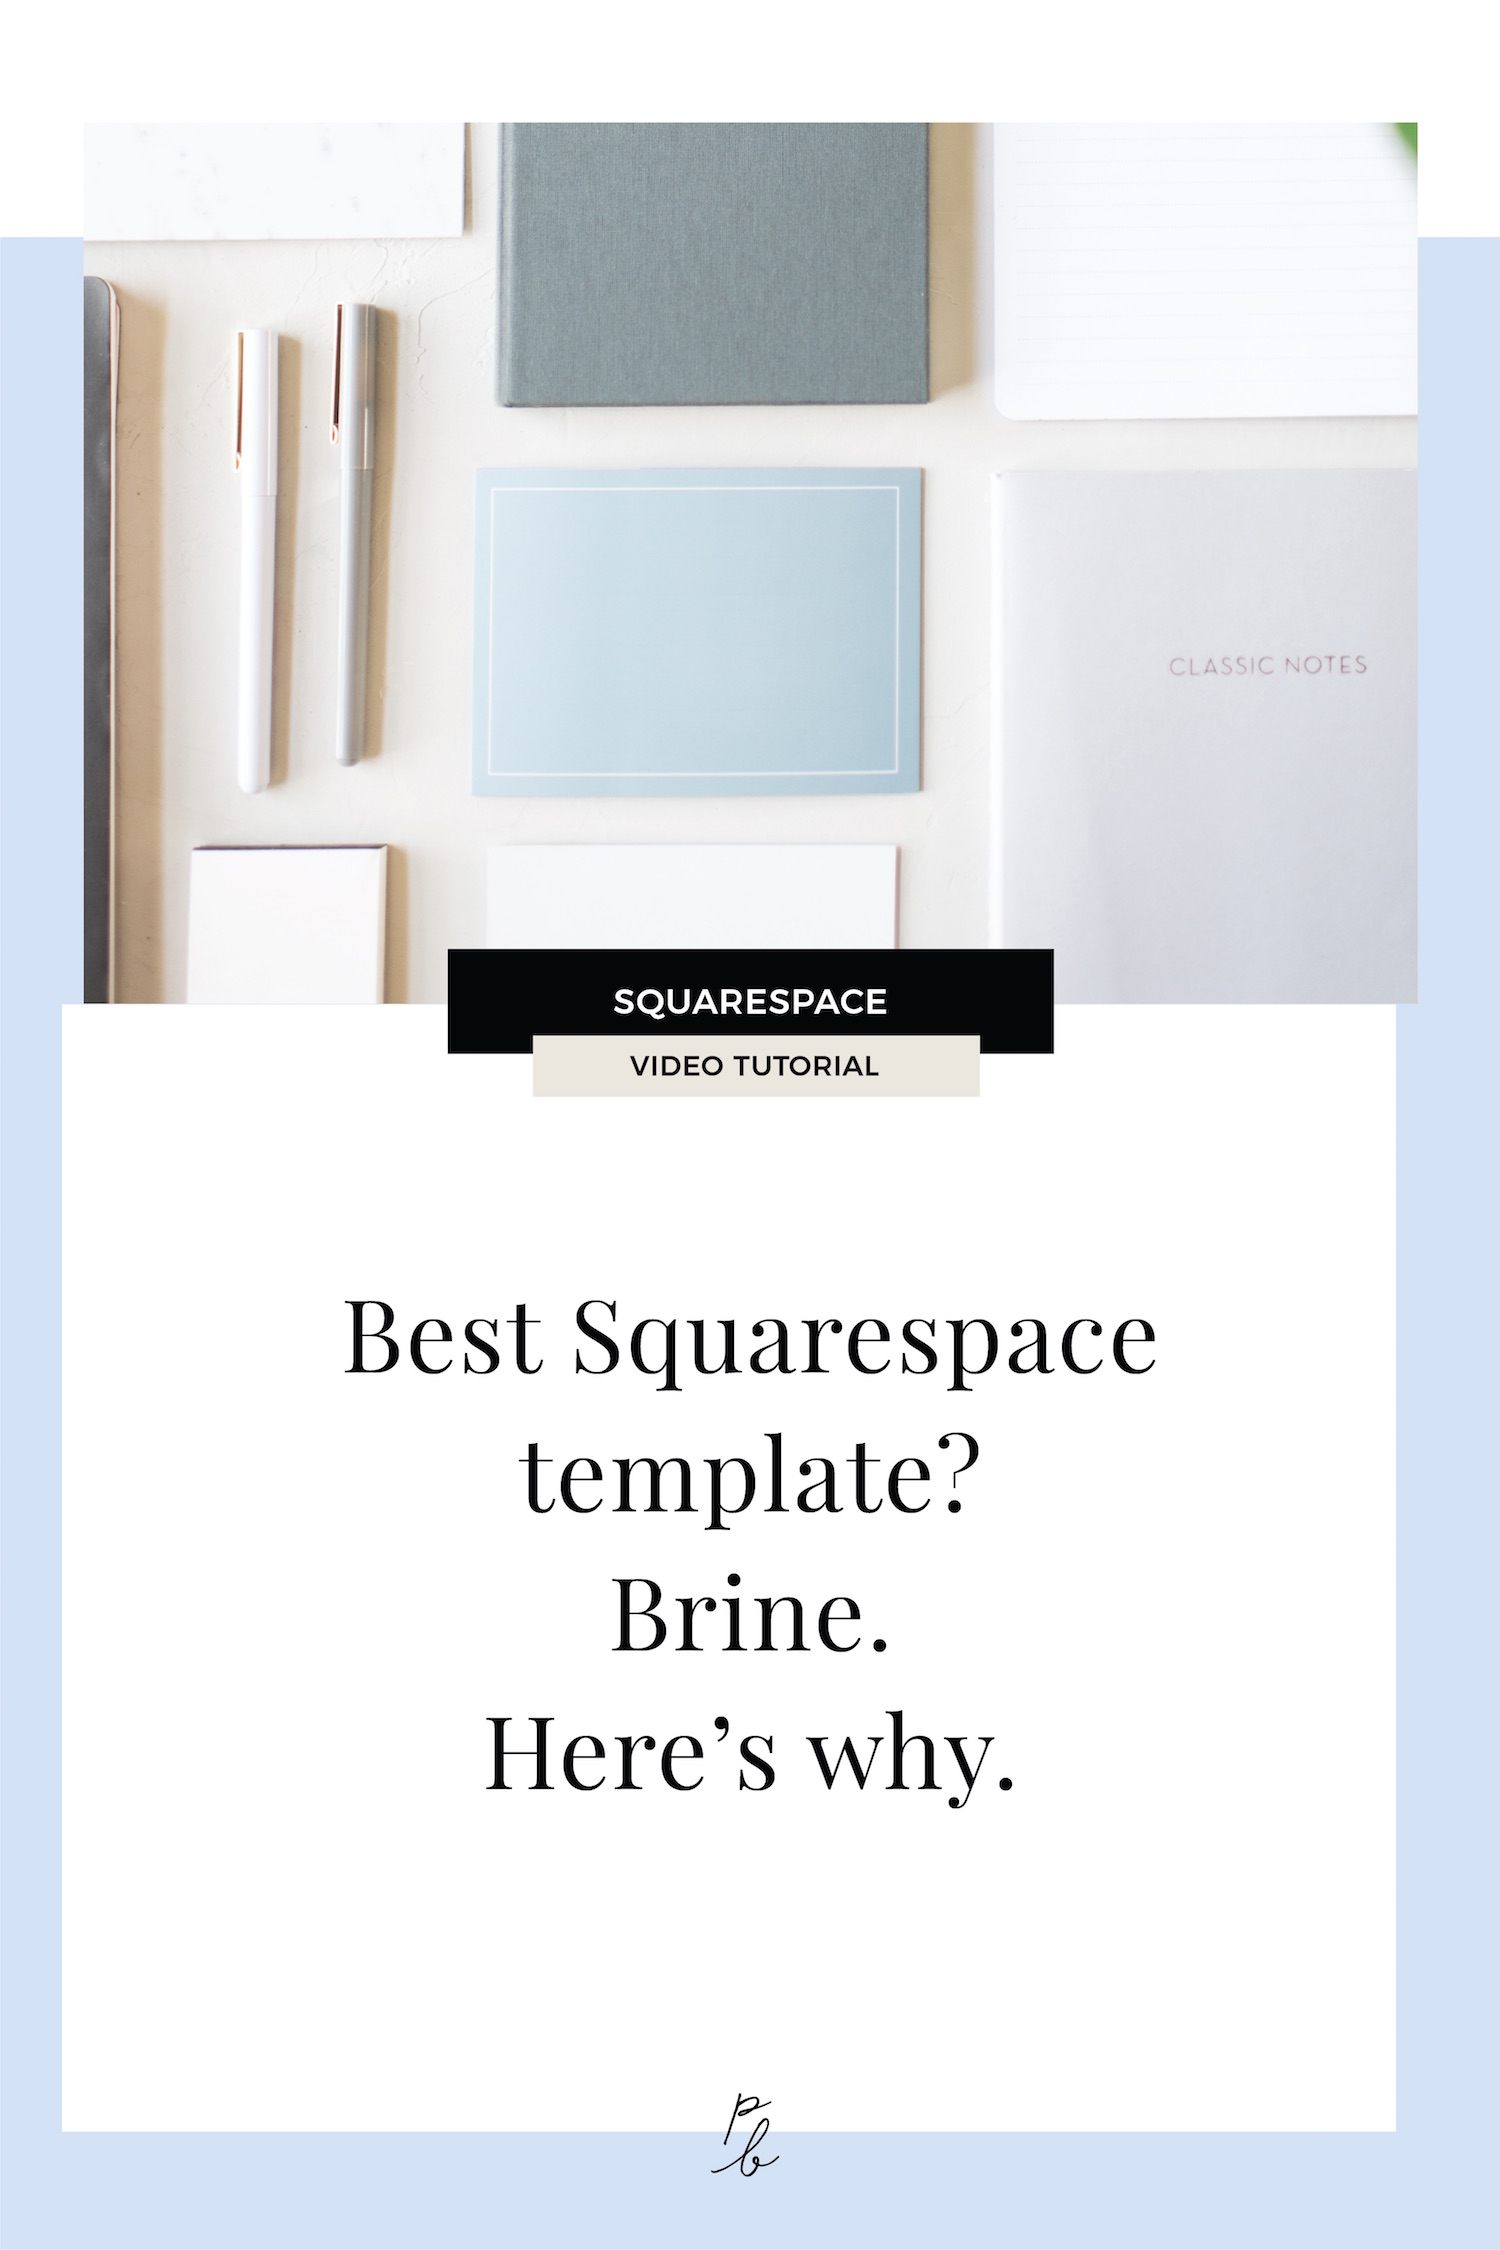 What Is The Best Squarespace Template Brine Here S Why